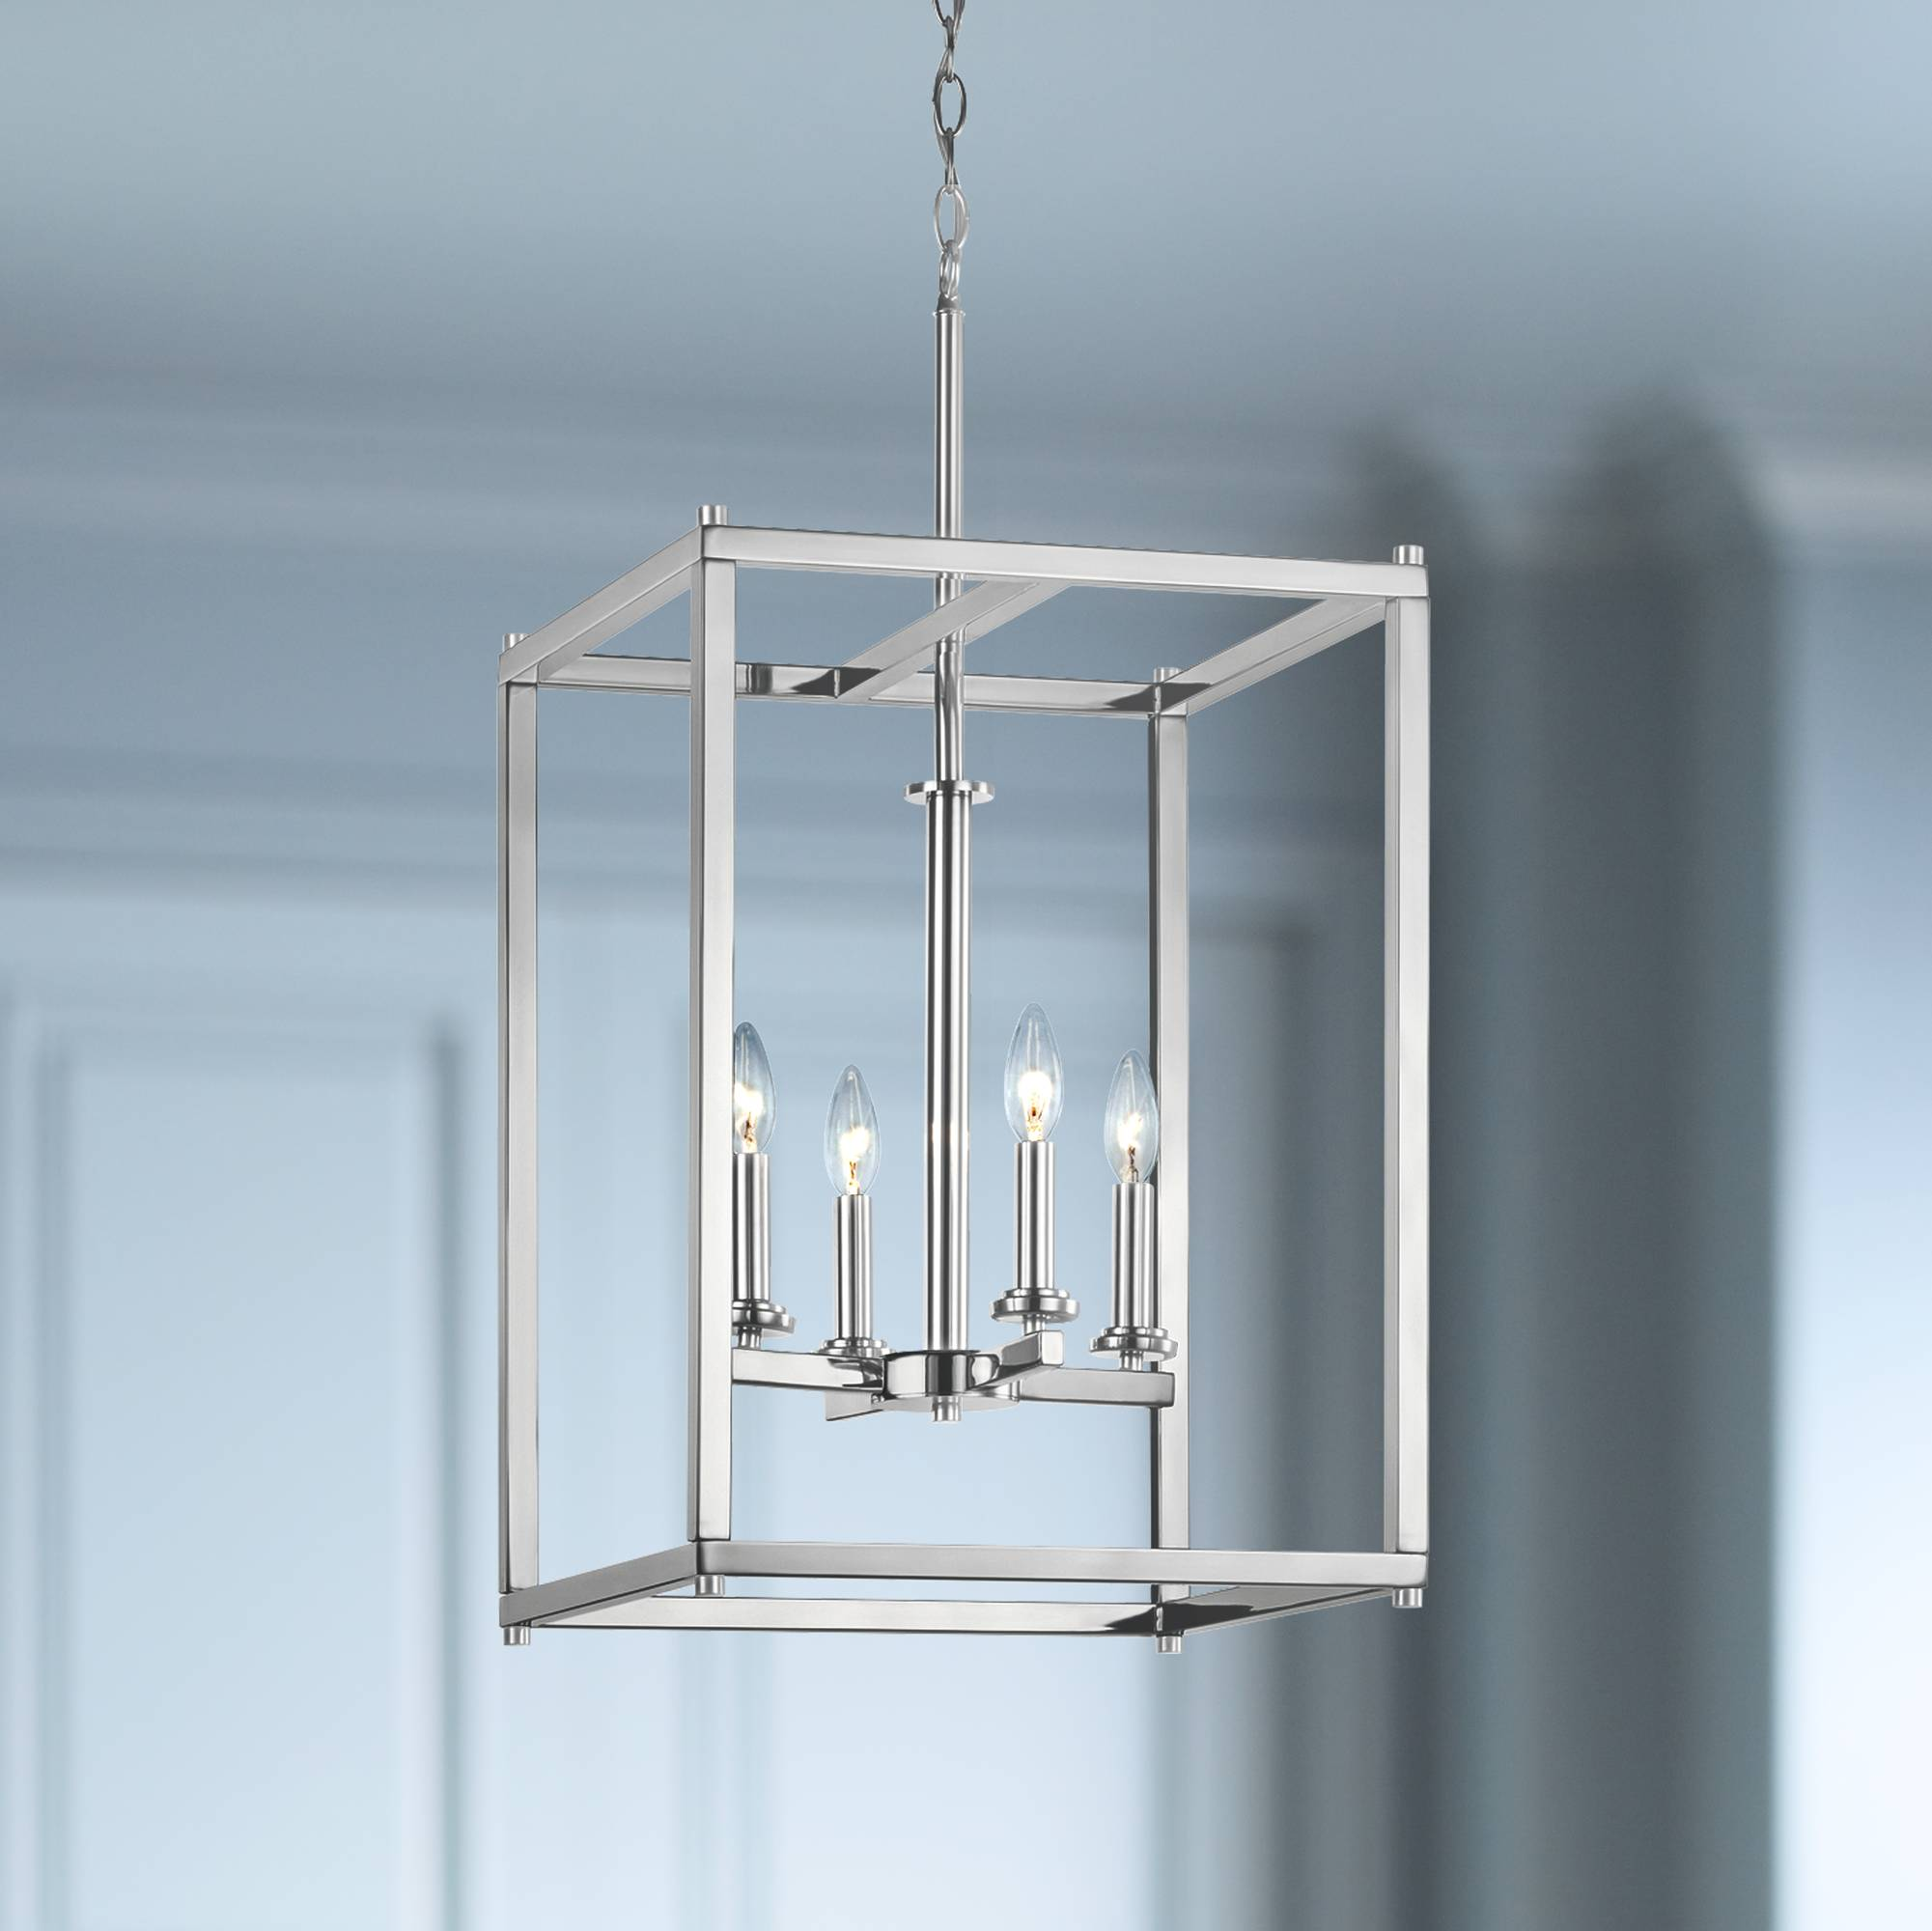 Kichler crosby 16 wide dual chrome 4 light foyer pendant